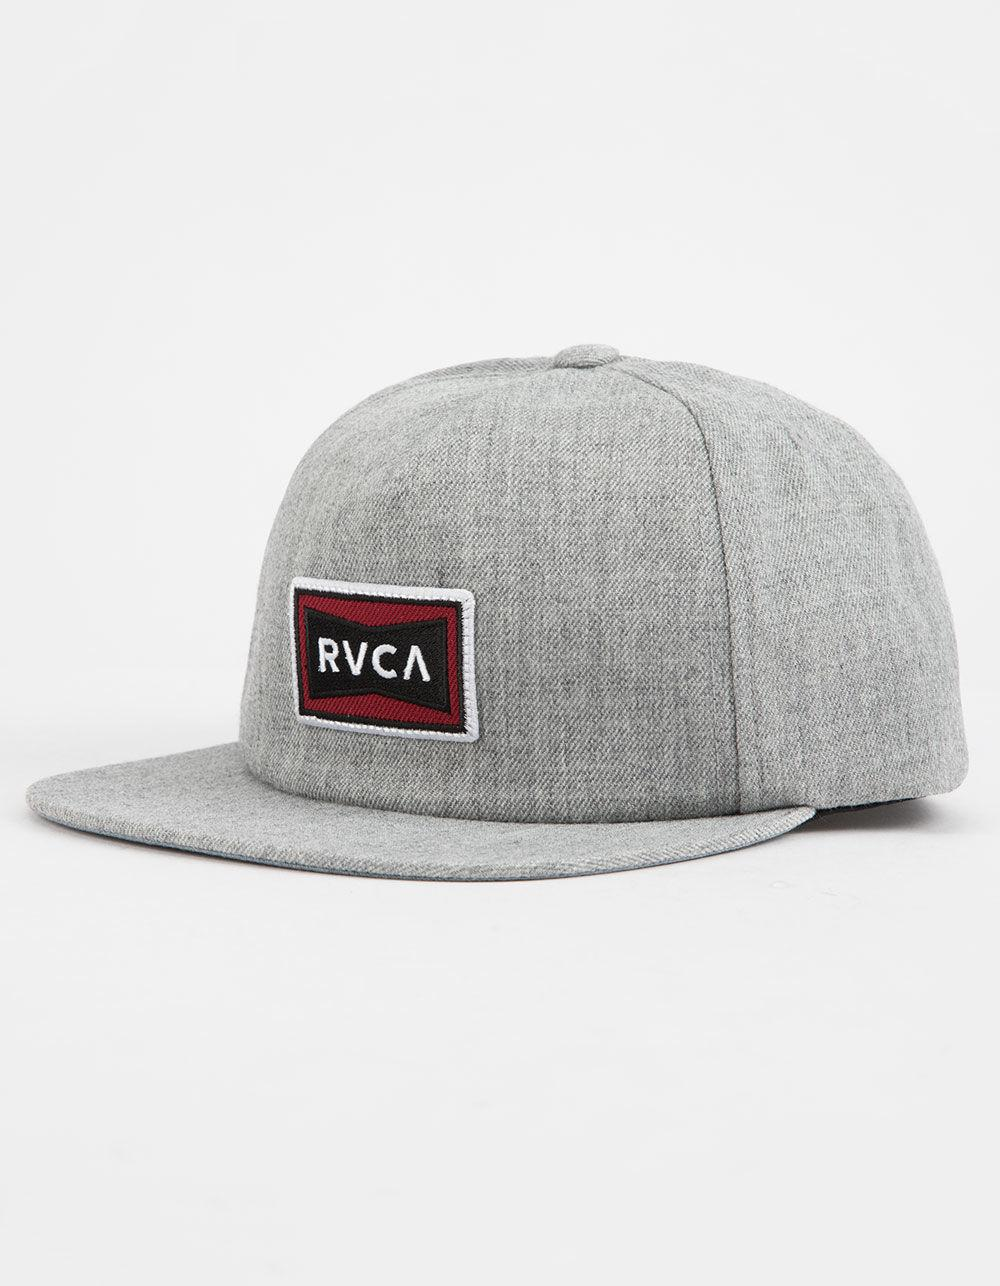 f330408c68a Lyst - Rvca Pace Structure Heather Gray Mens Snapback Hat in Gray ...